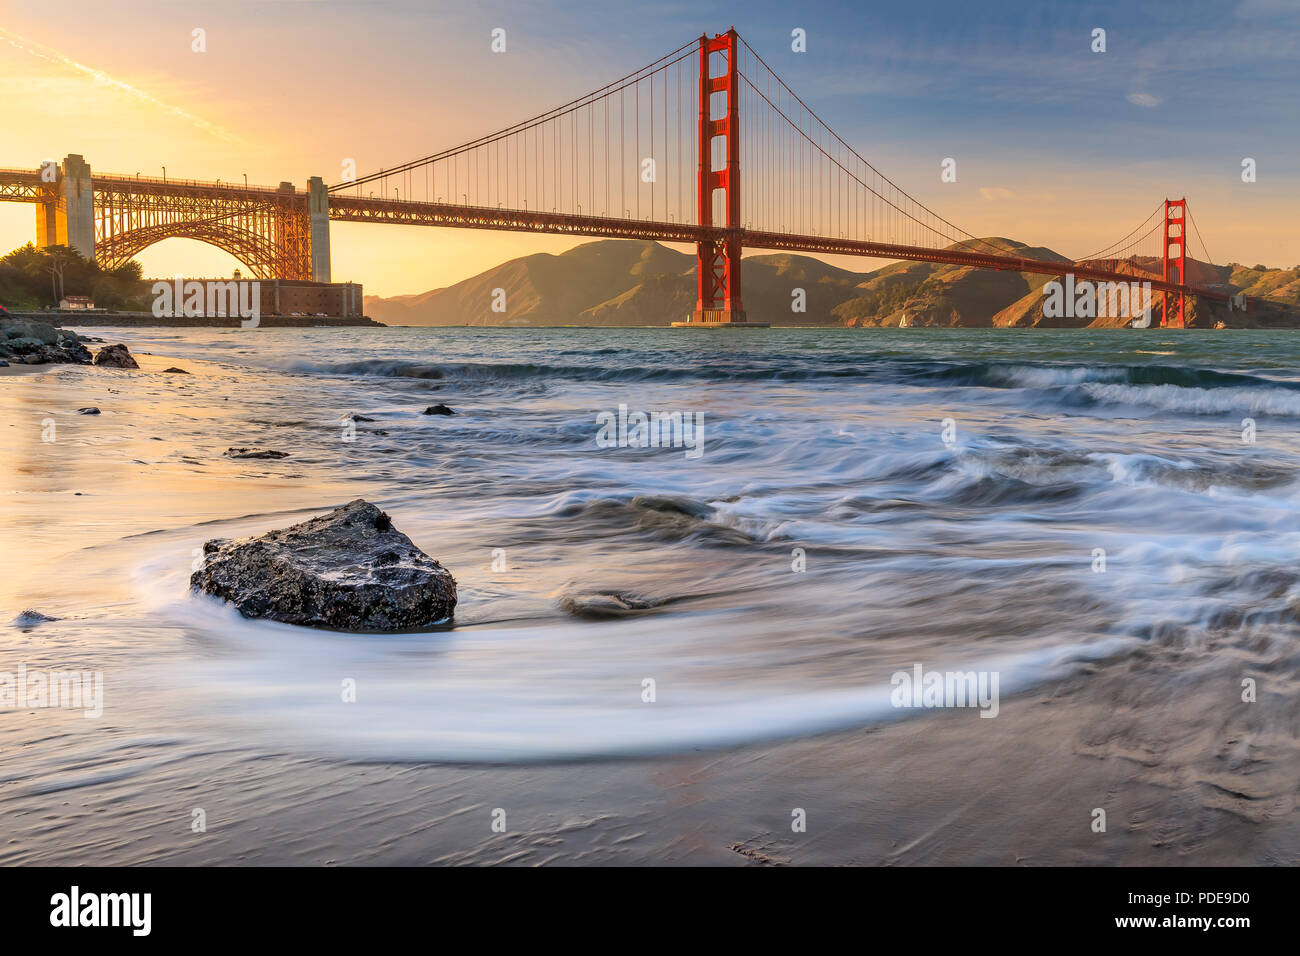 Long exposure of a stunning sunset at the beach by the famous Golden Gate Bridge in San Francisco, California - Stock Image